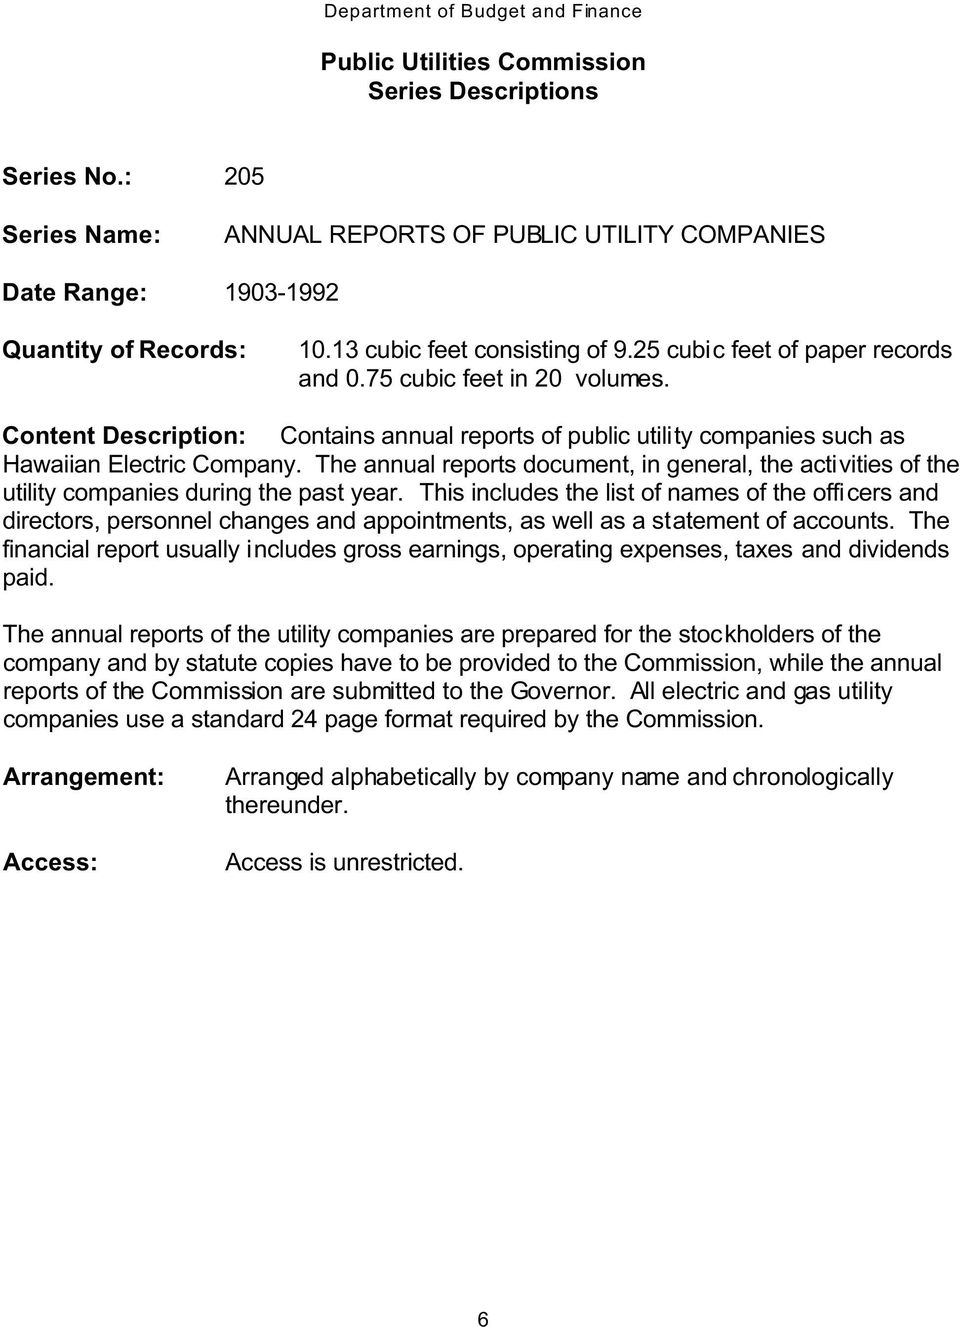 The annual reports document, in general, the activities of the utility companies during the past year.